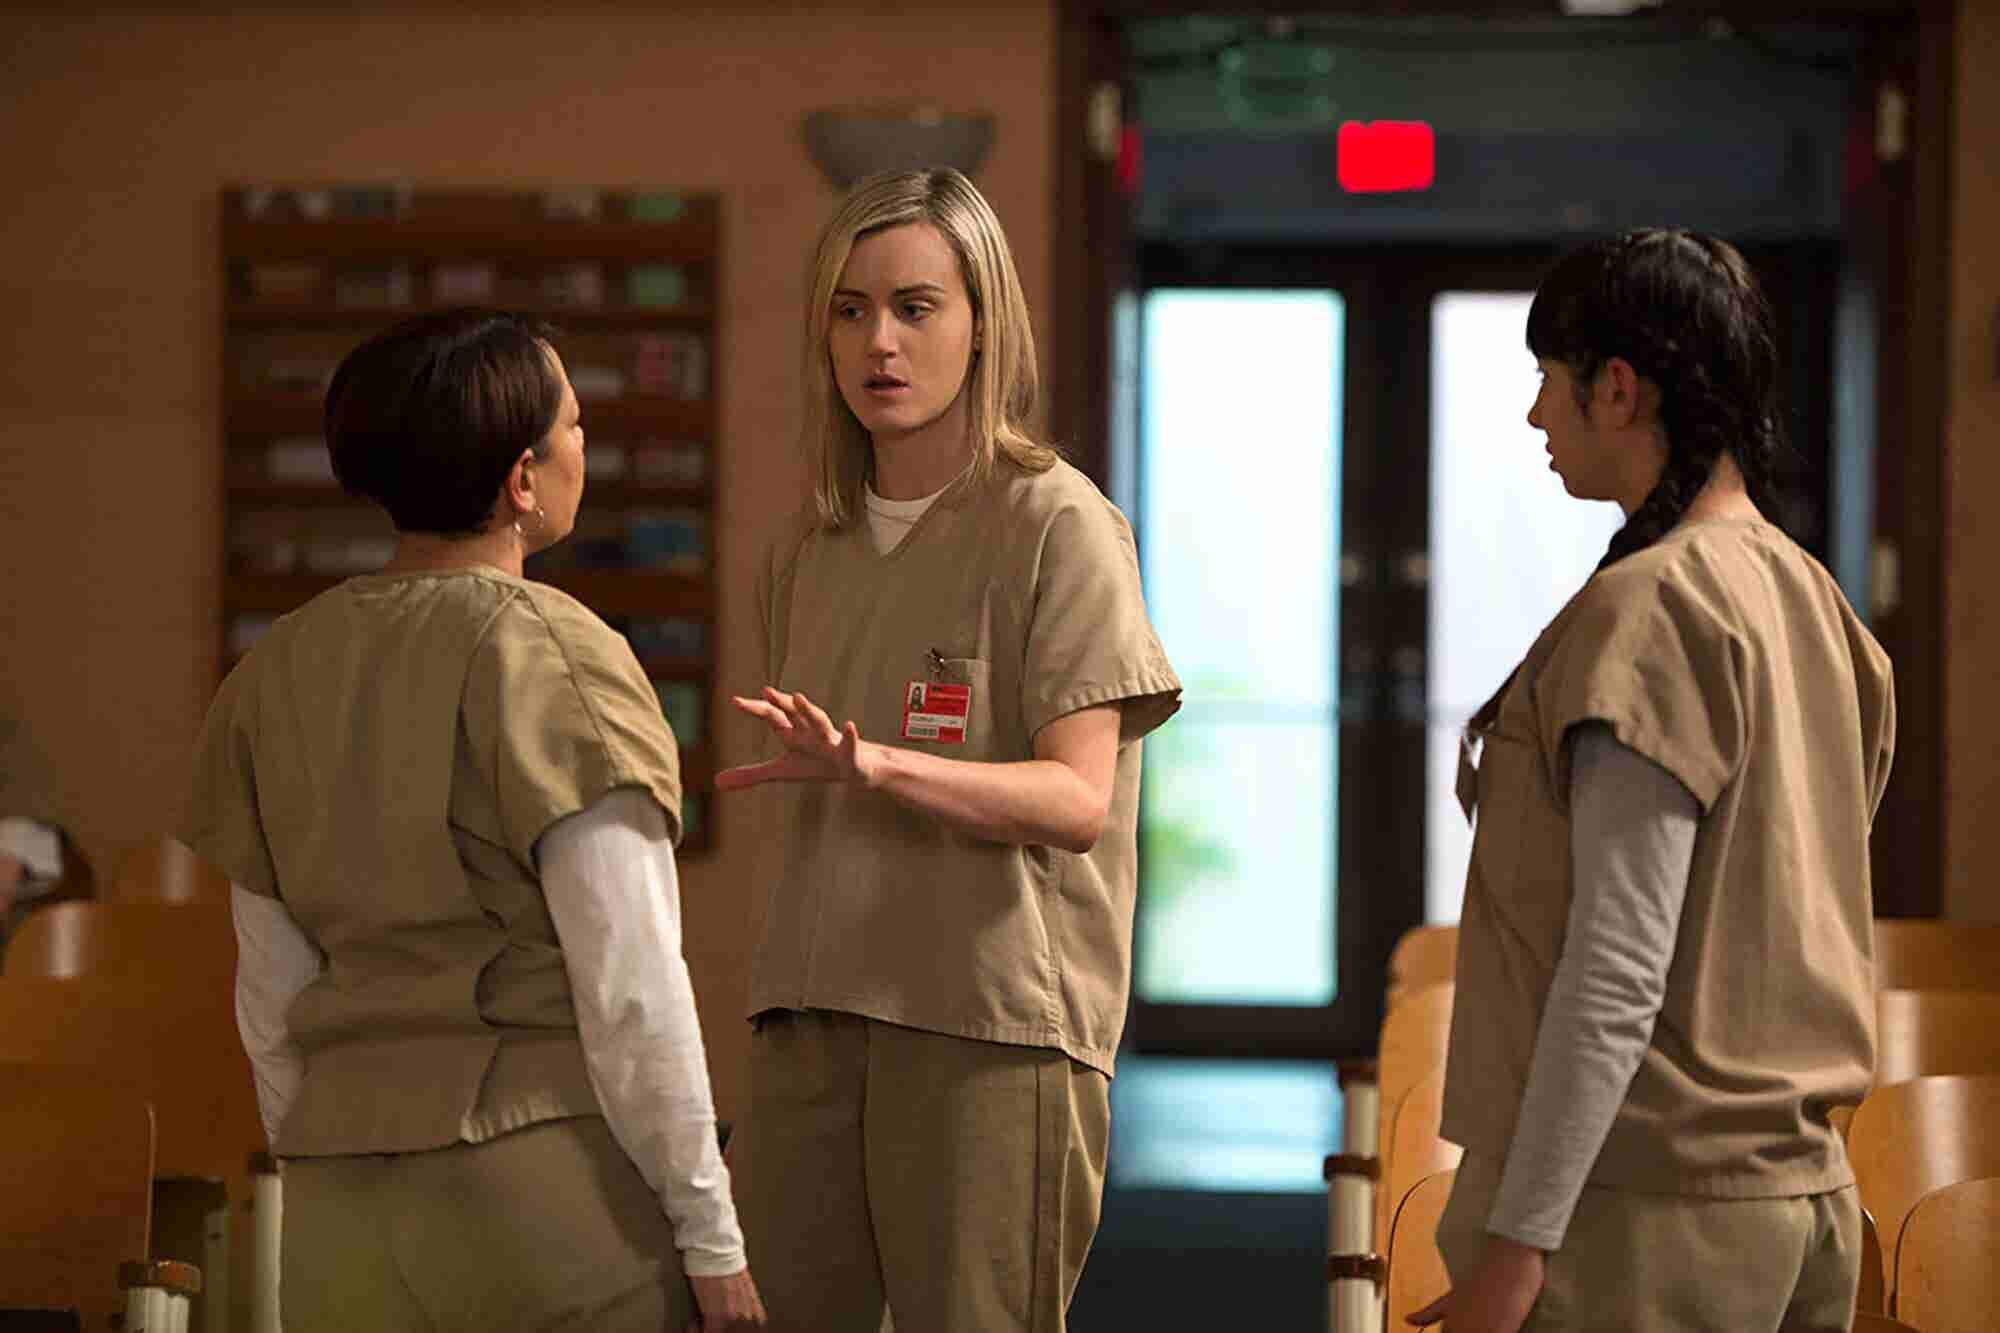 13 Prison Slang Terms You Should Use With Co-Workers